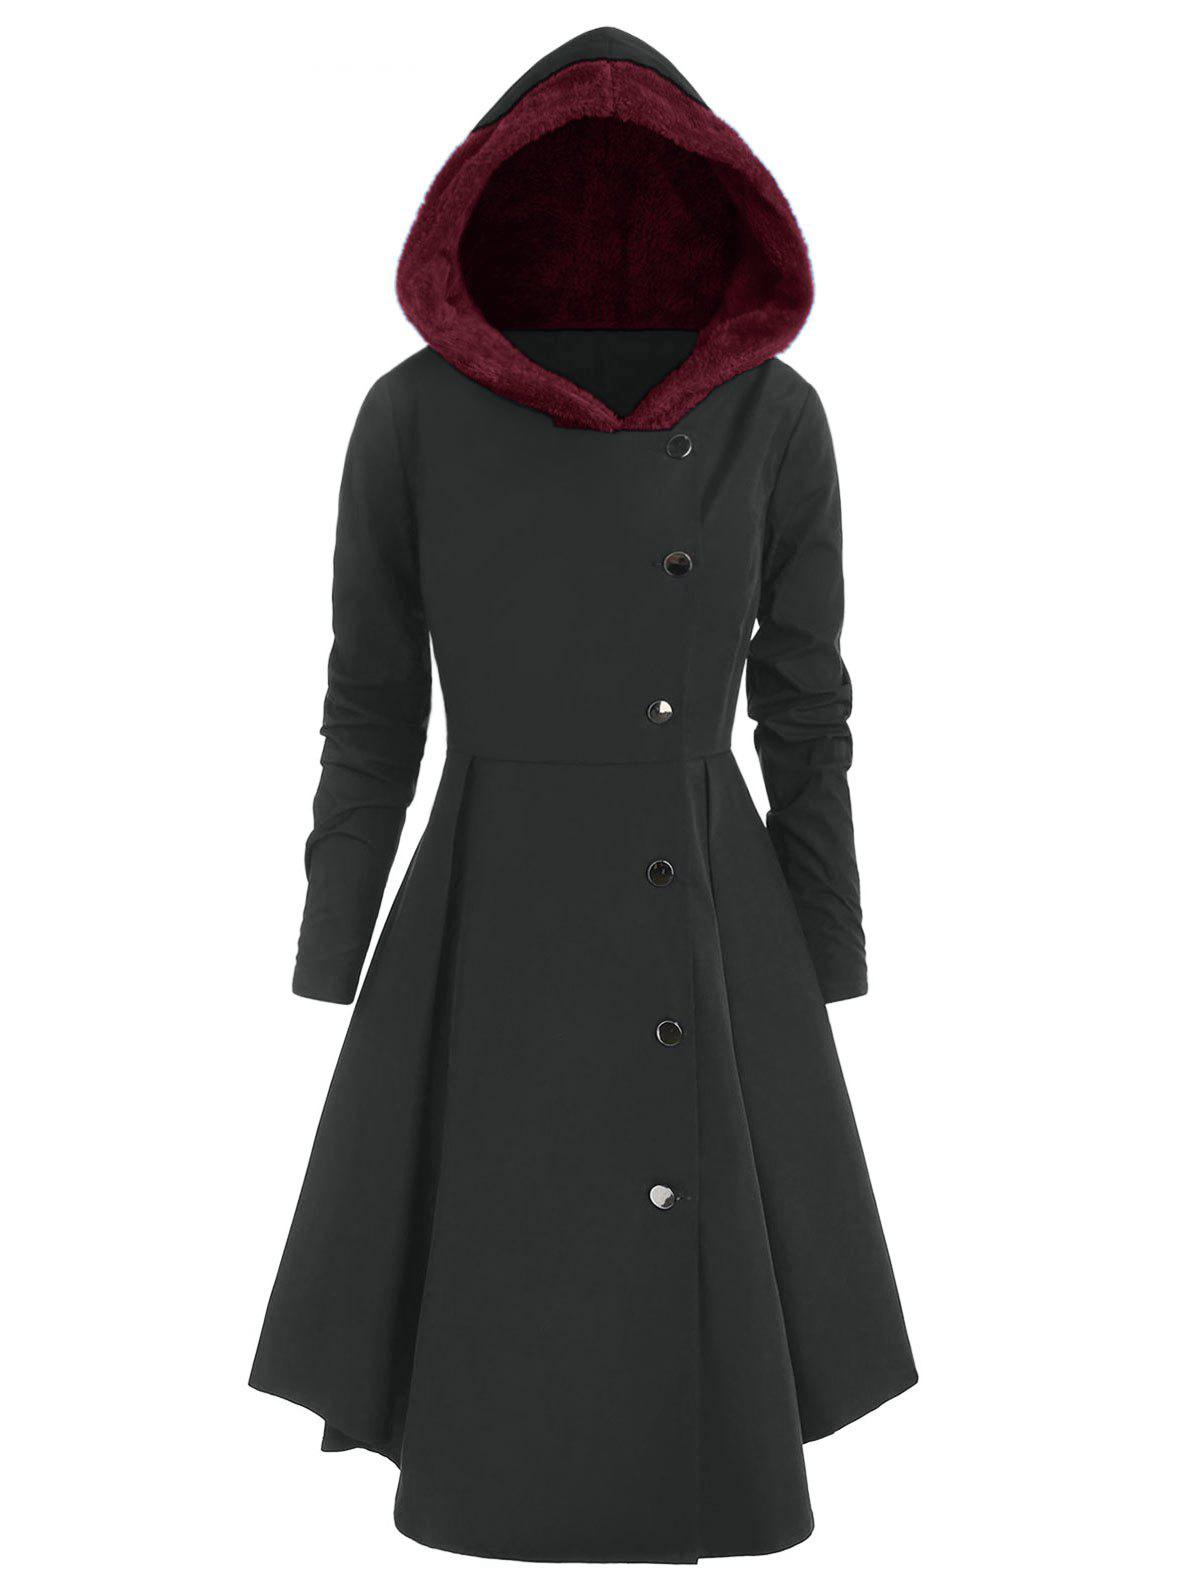 Plus Size Asymmetric Contrast Hooded Skirted Coat - CARBON GRAY L